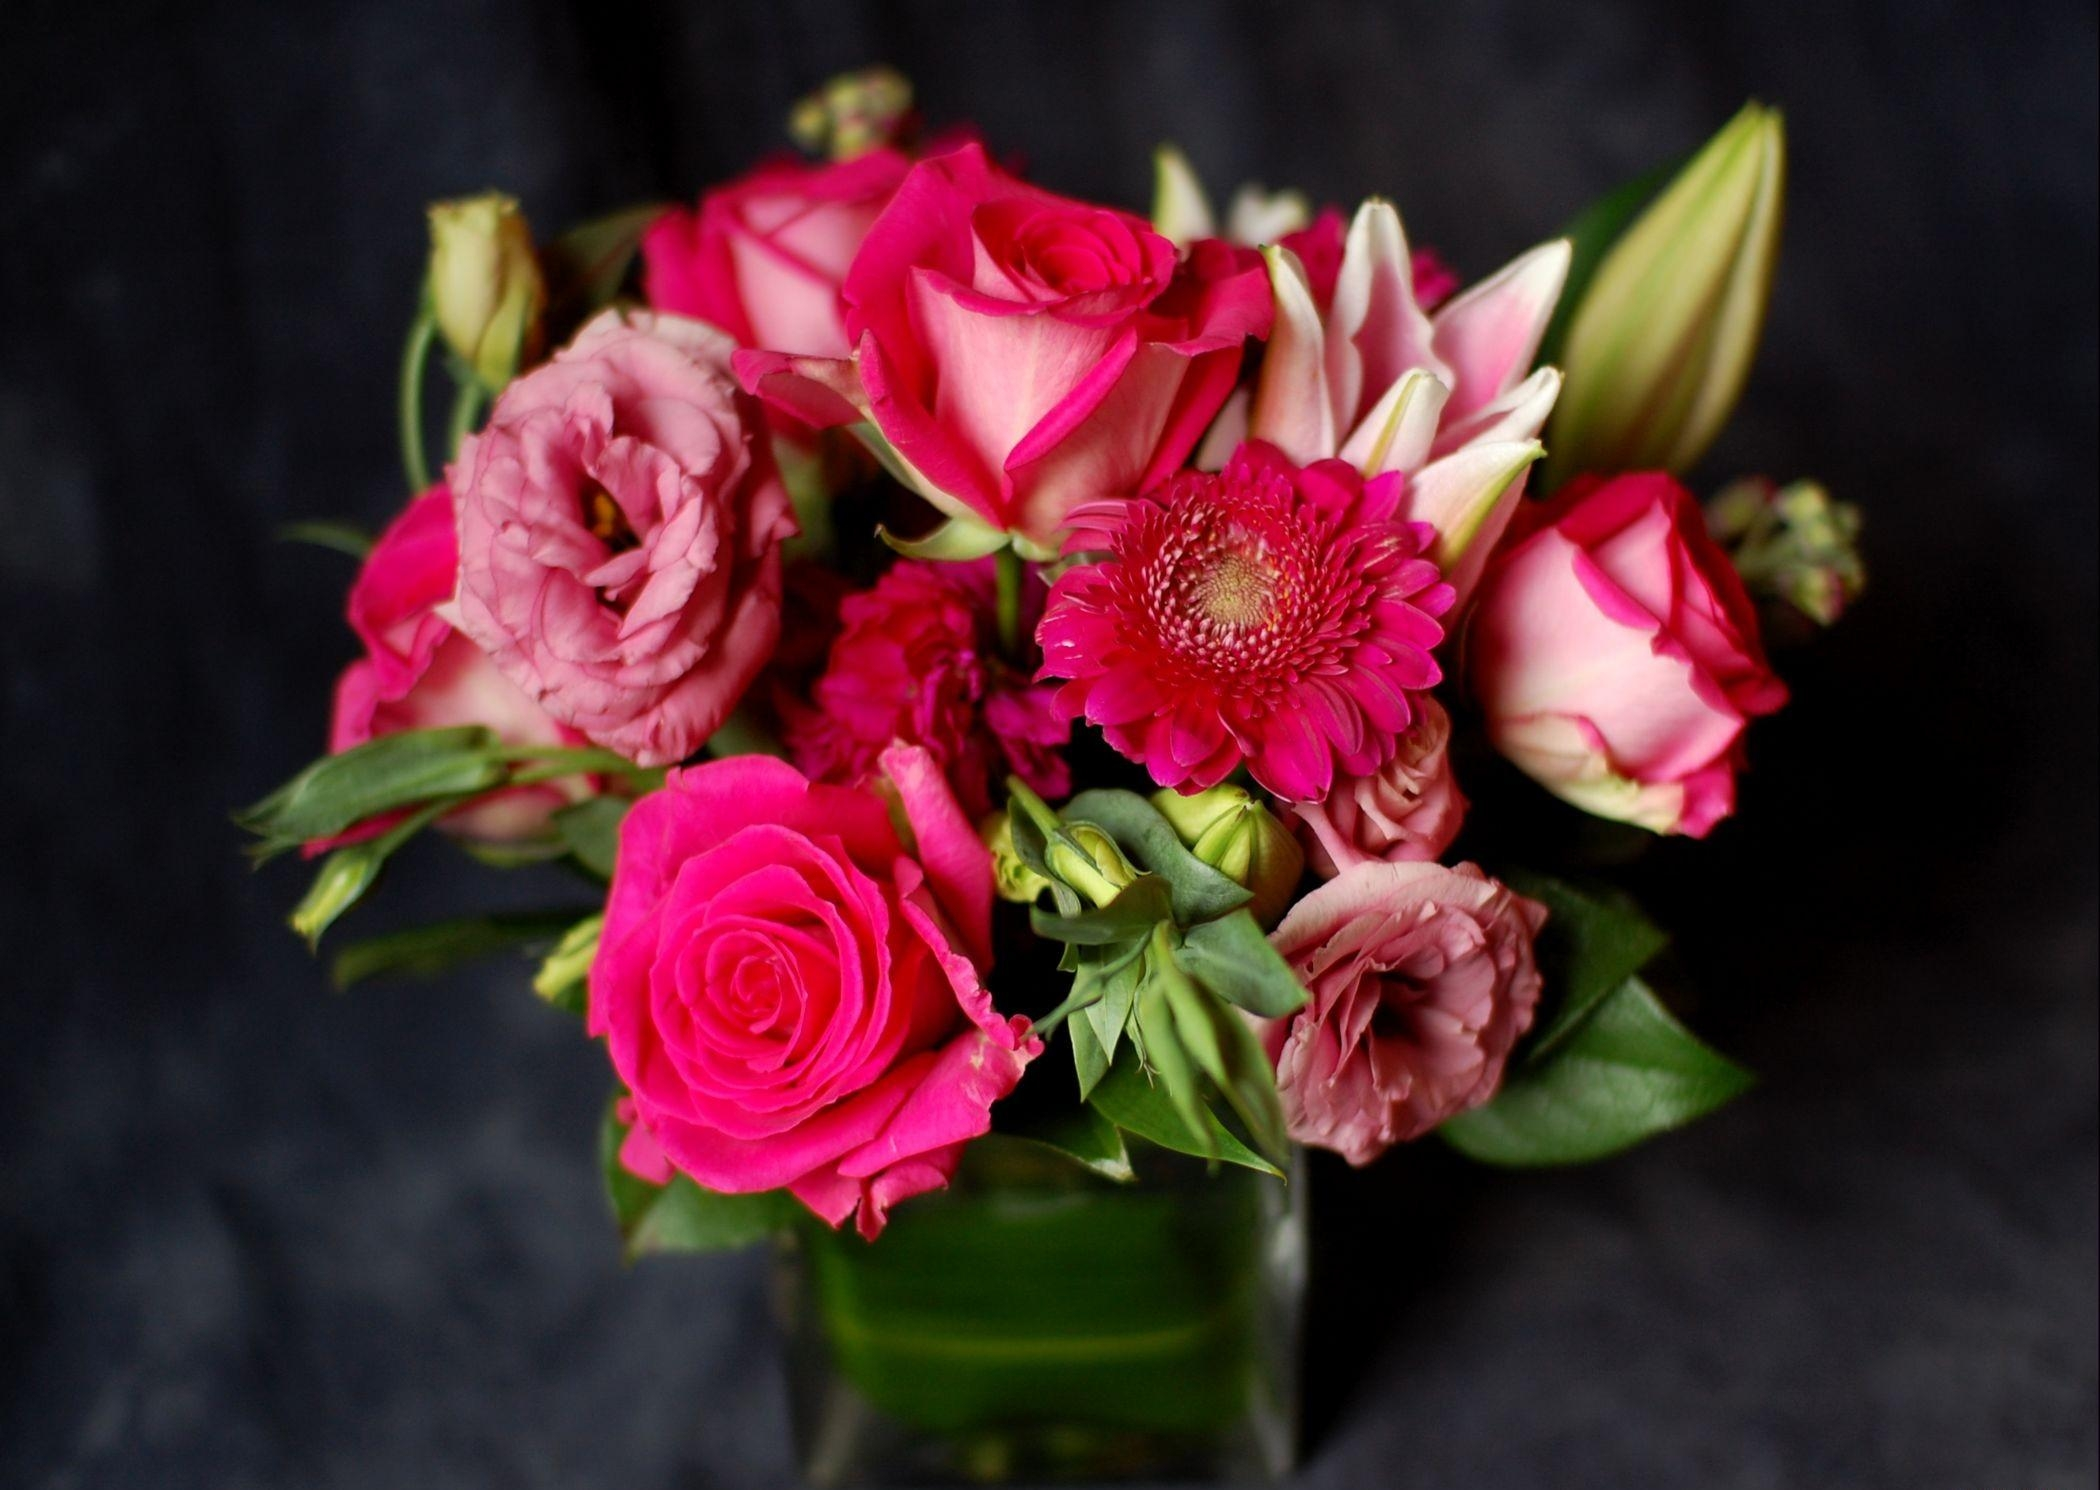 157957 download wallpaper Flowers, Buds, Bouquet, Glass, Composition, Roses, Gerberas screensavers and pictures for free